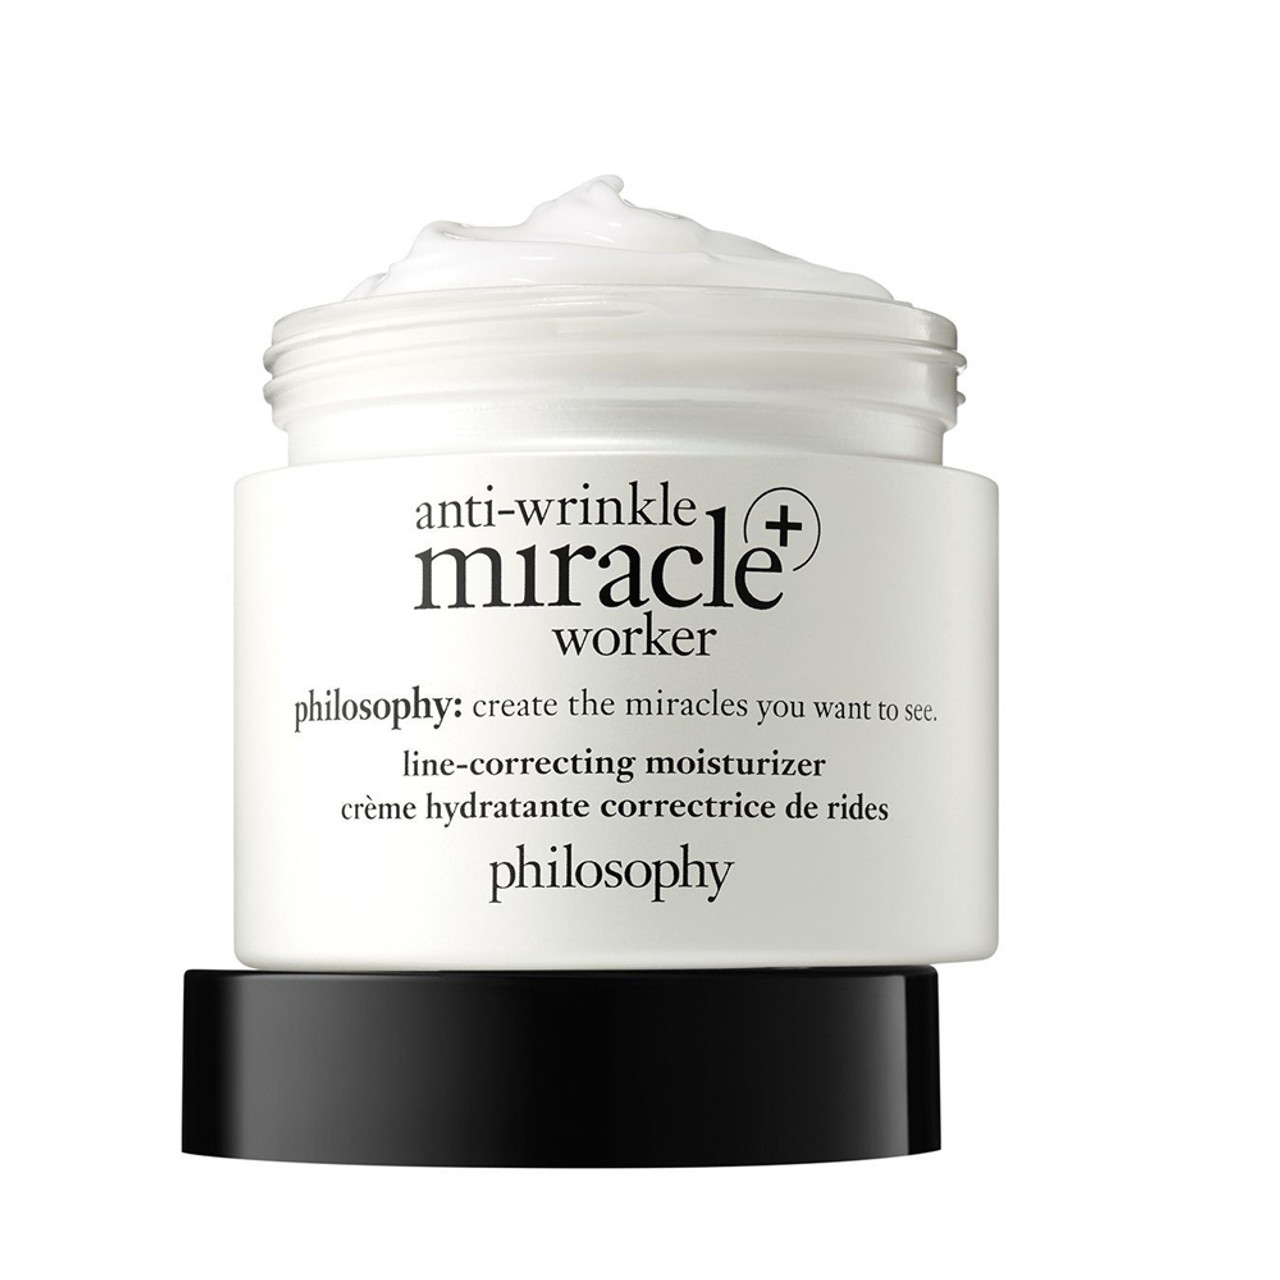 philosophy Anti-Wrinkle Miracle Worker+ Line Correcting Moisturizer